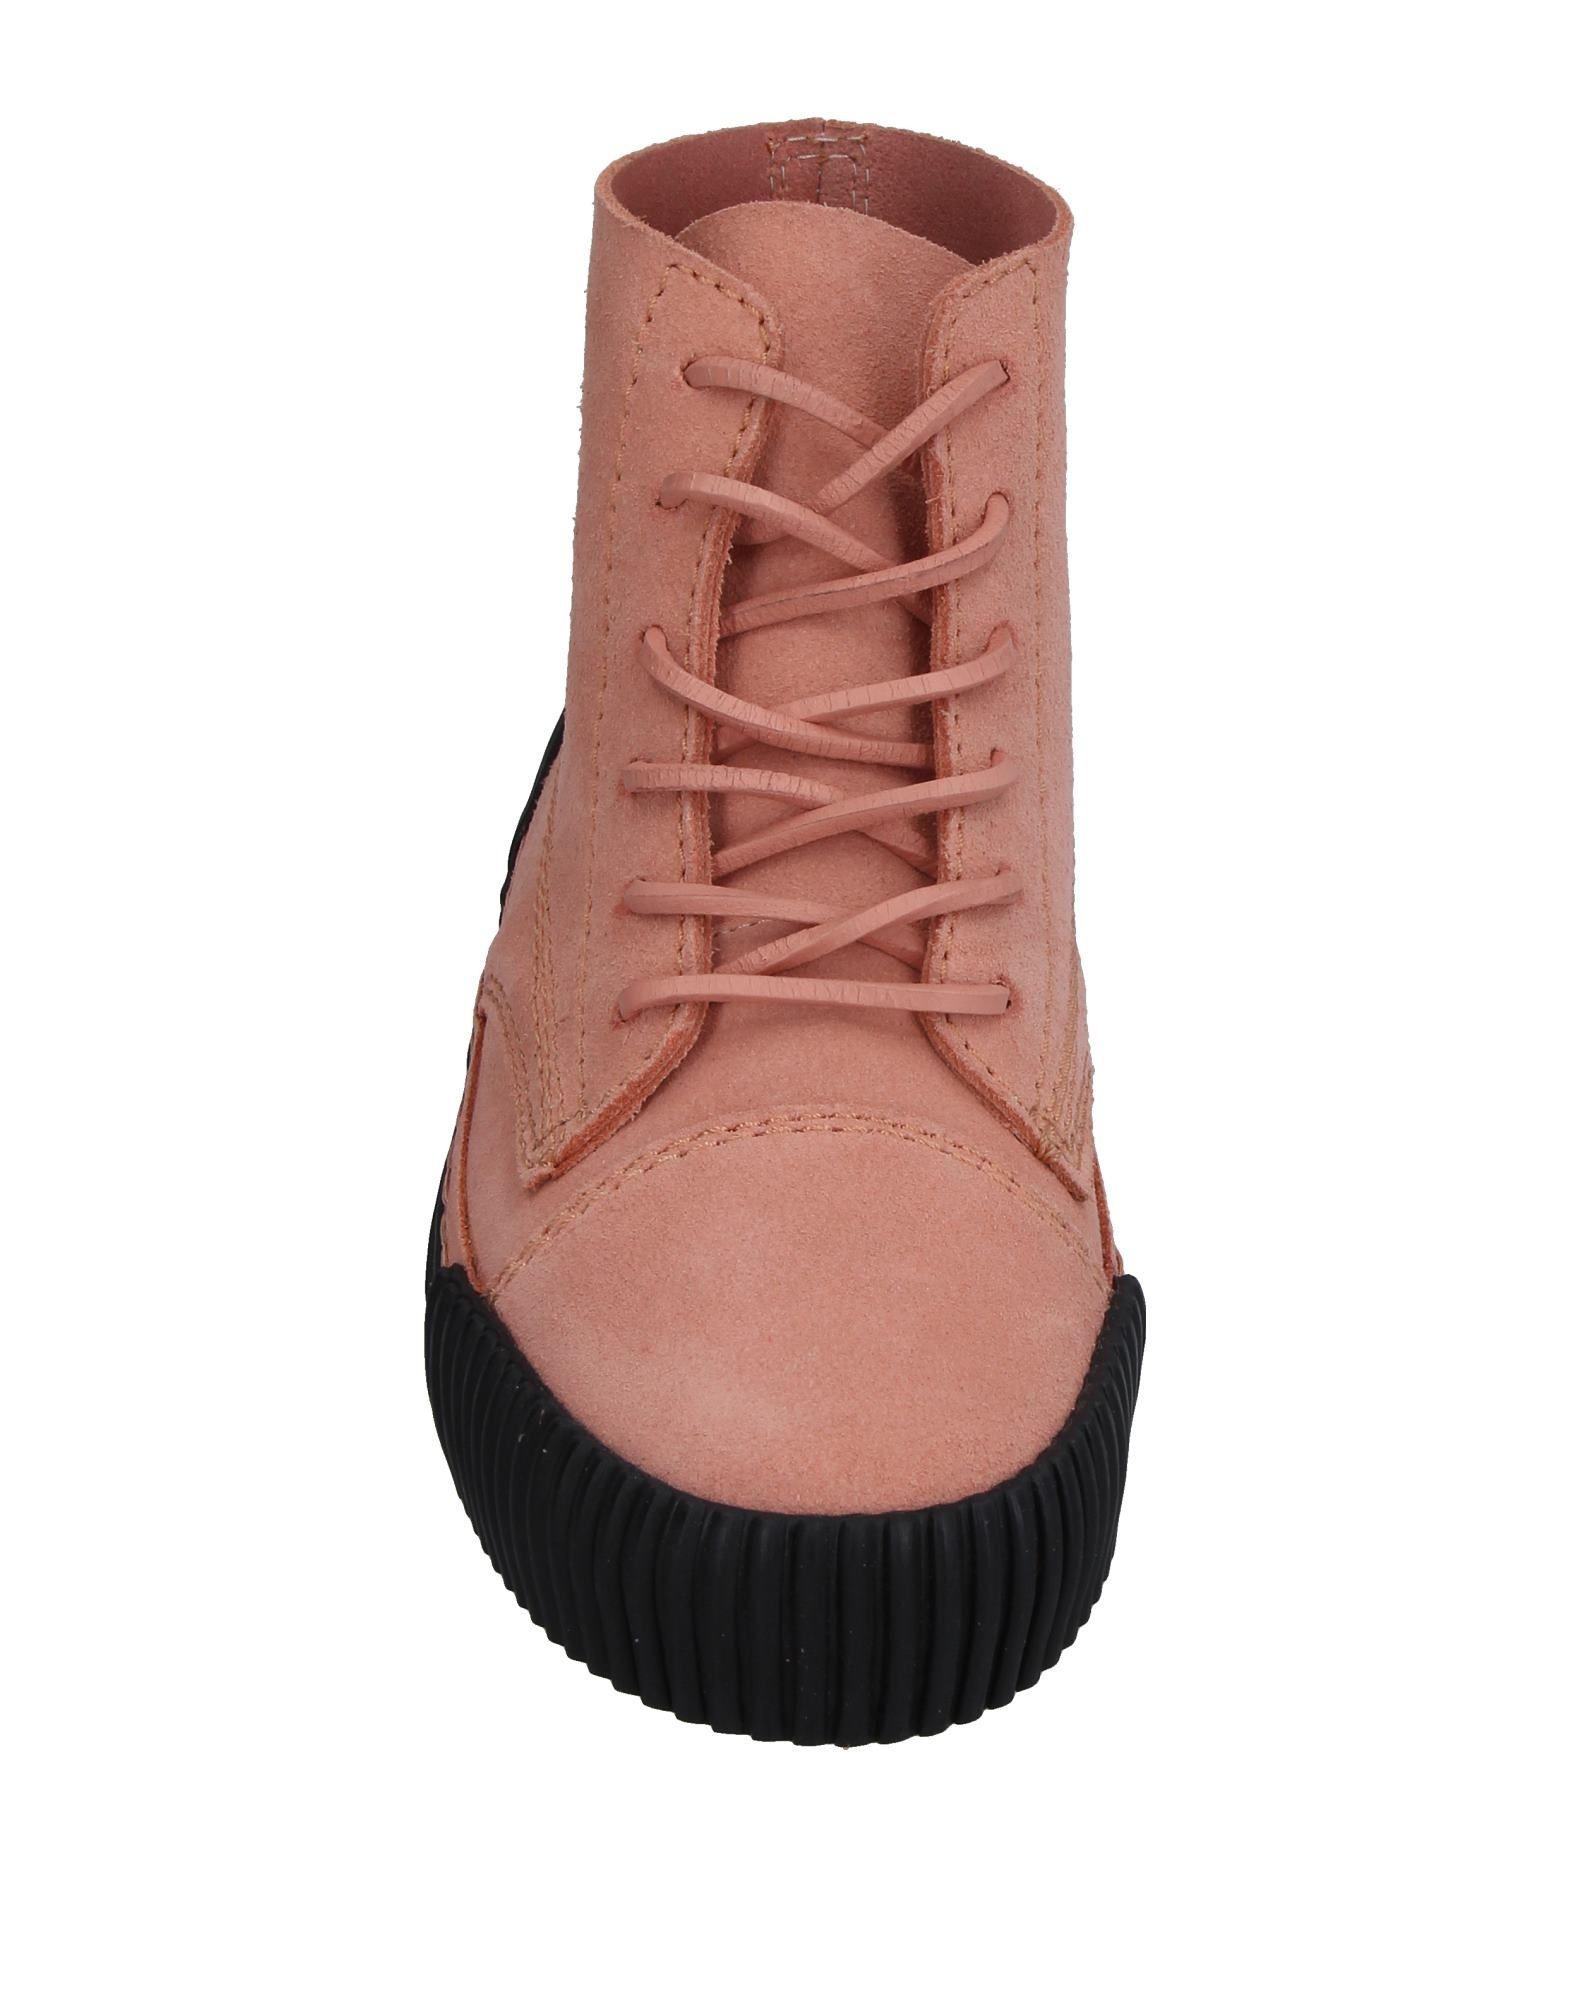 Alexander Wang Leather High-tops & Sneakers in Pink